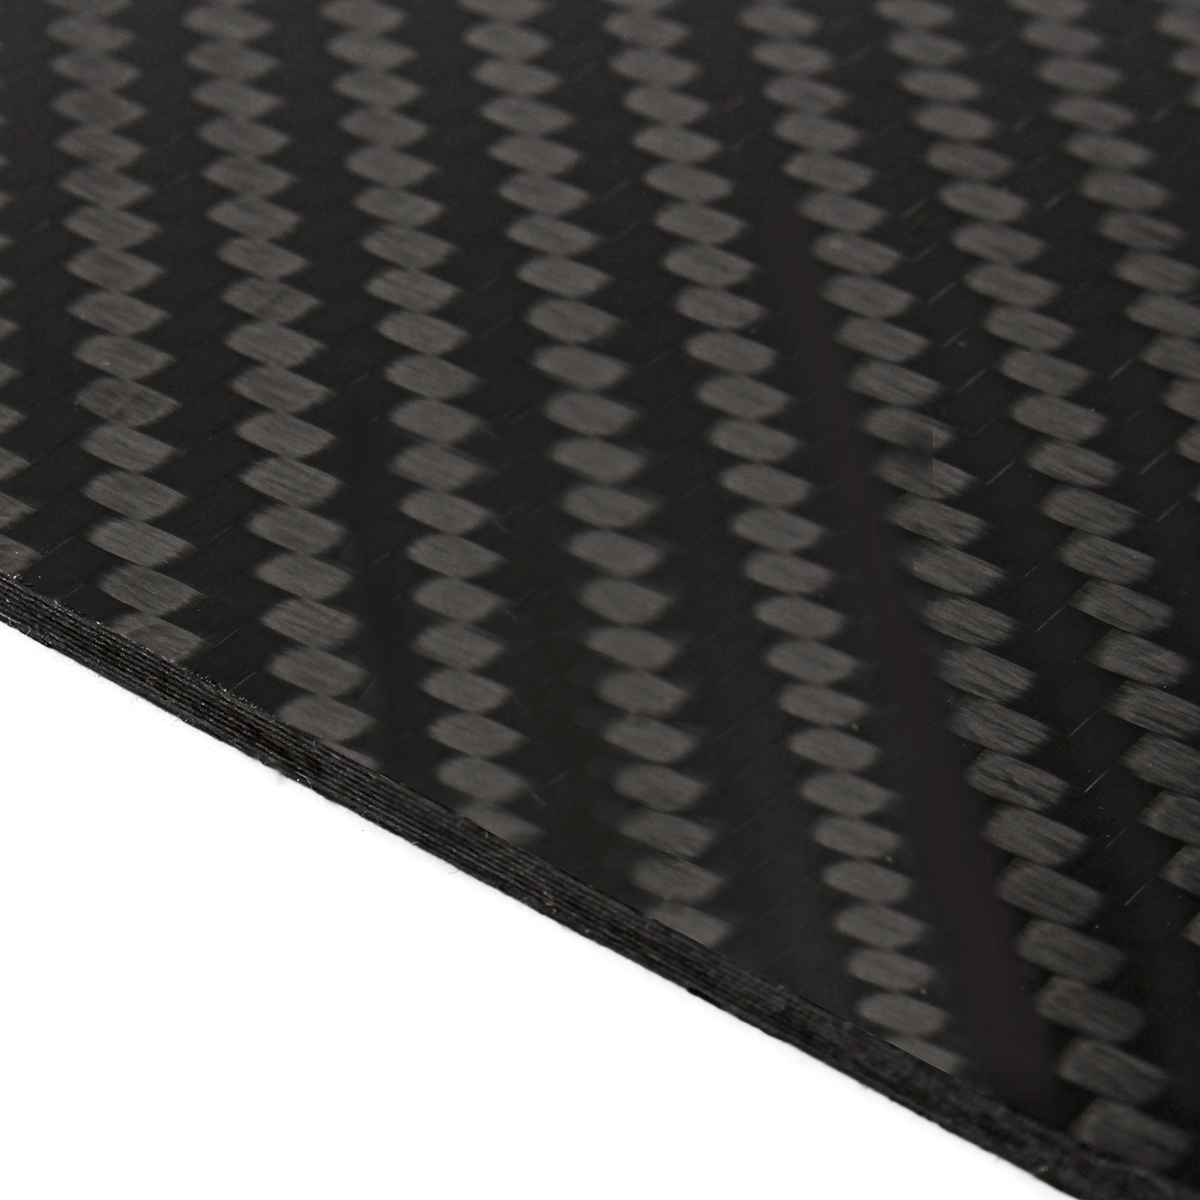 200x250x(0.5-2)mm Plain Weave 3K Carbon Fiber Plate Panel Sheet Twill Matt Surface Board